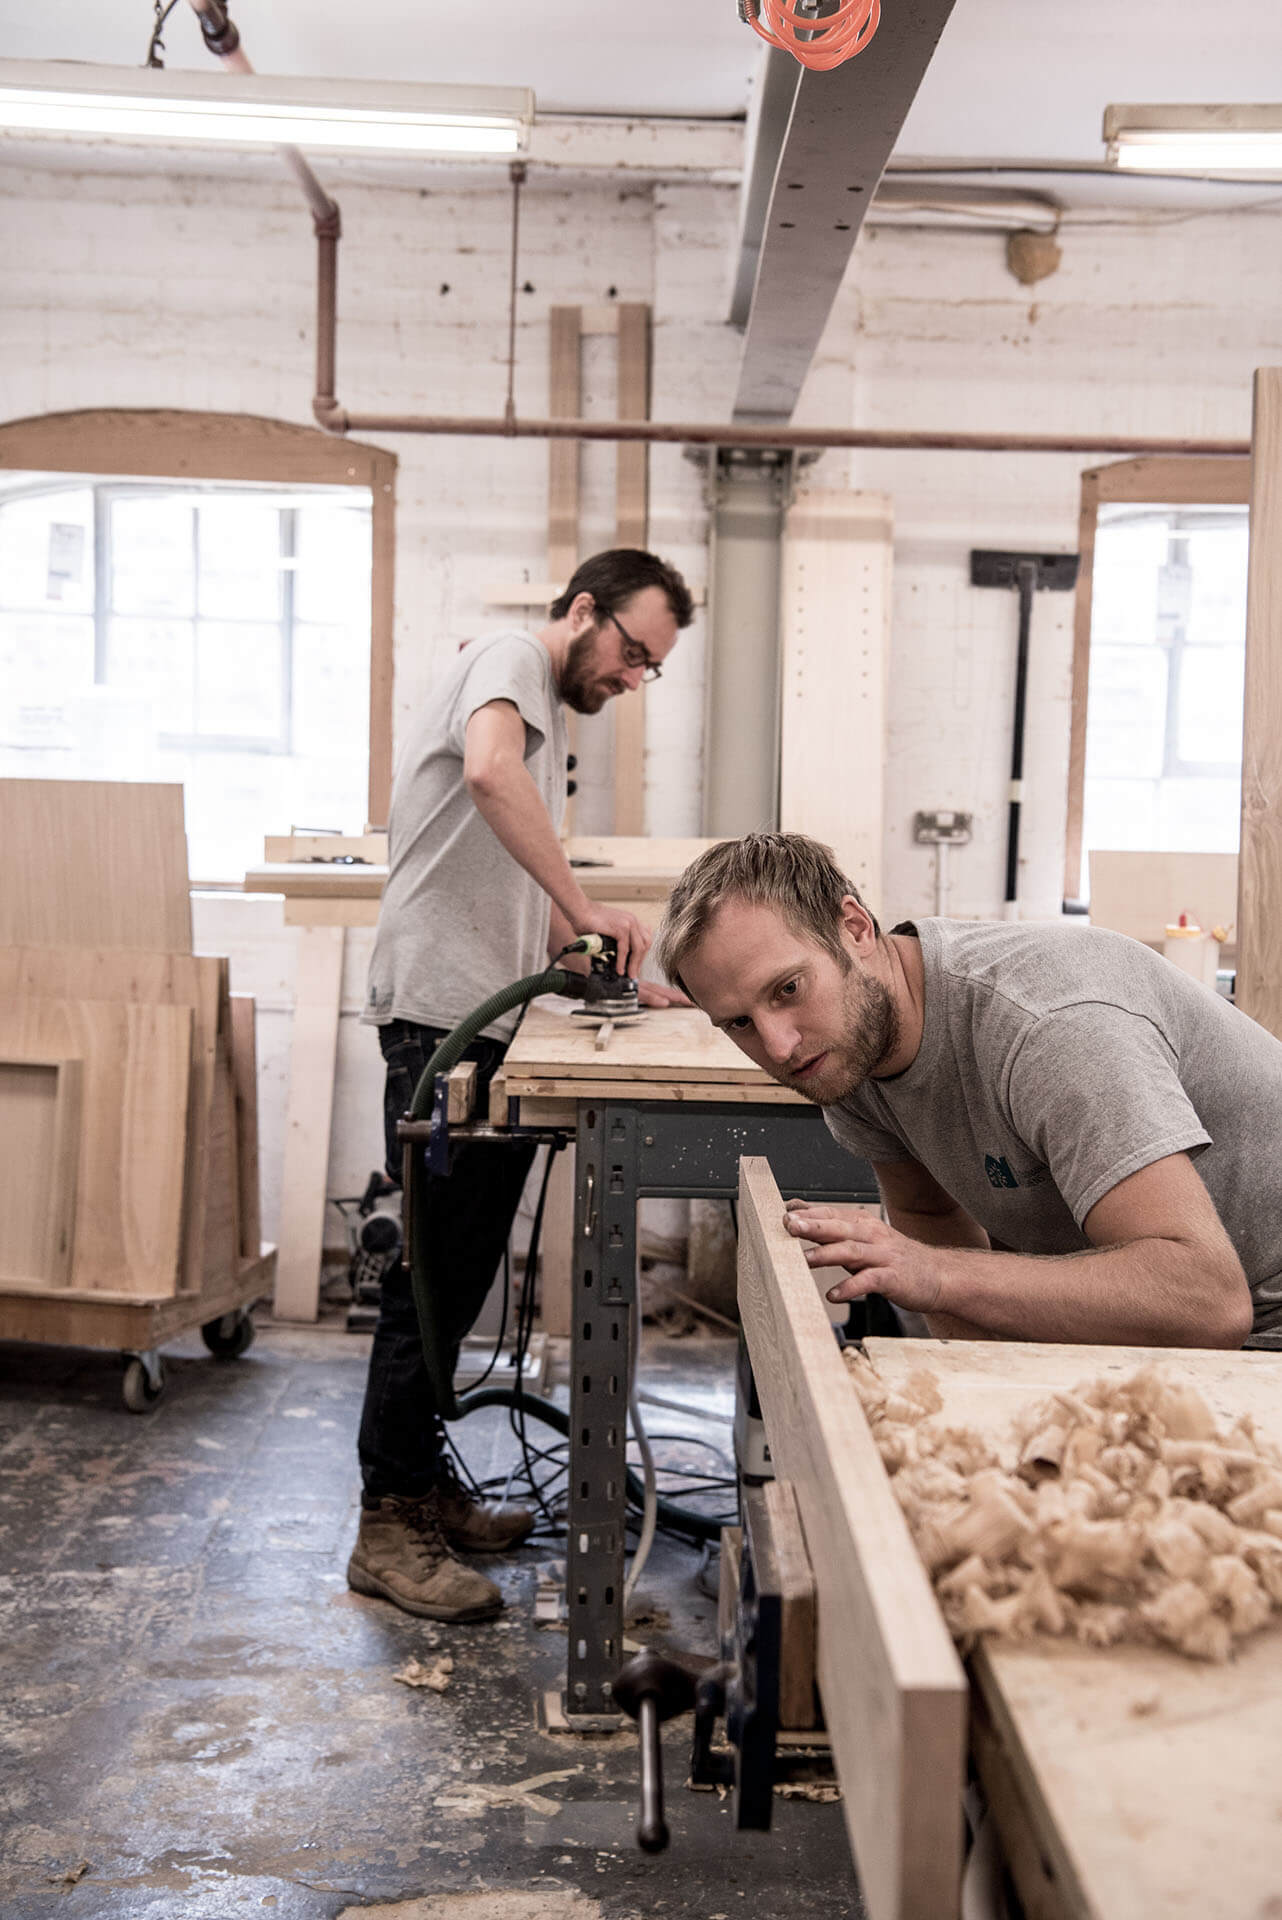 Joe Hoyle & Ben Barrett on the workshop September 2018